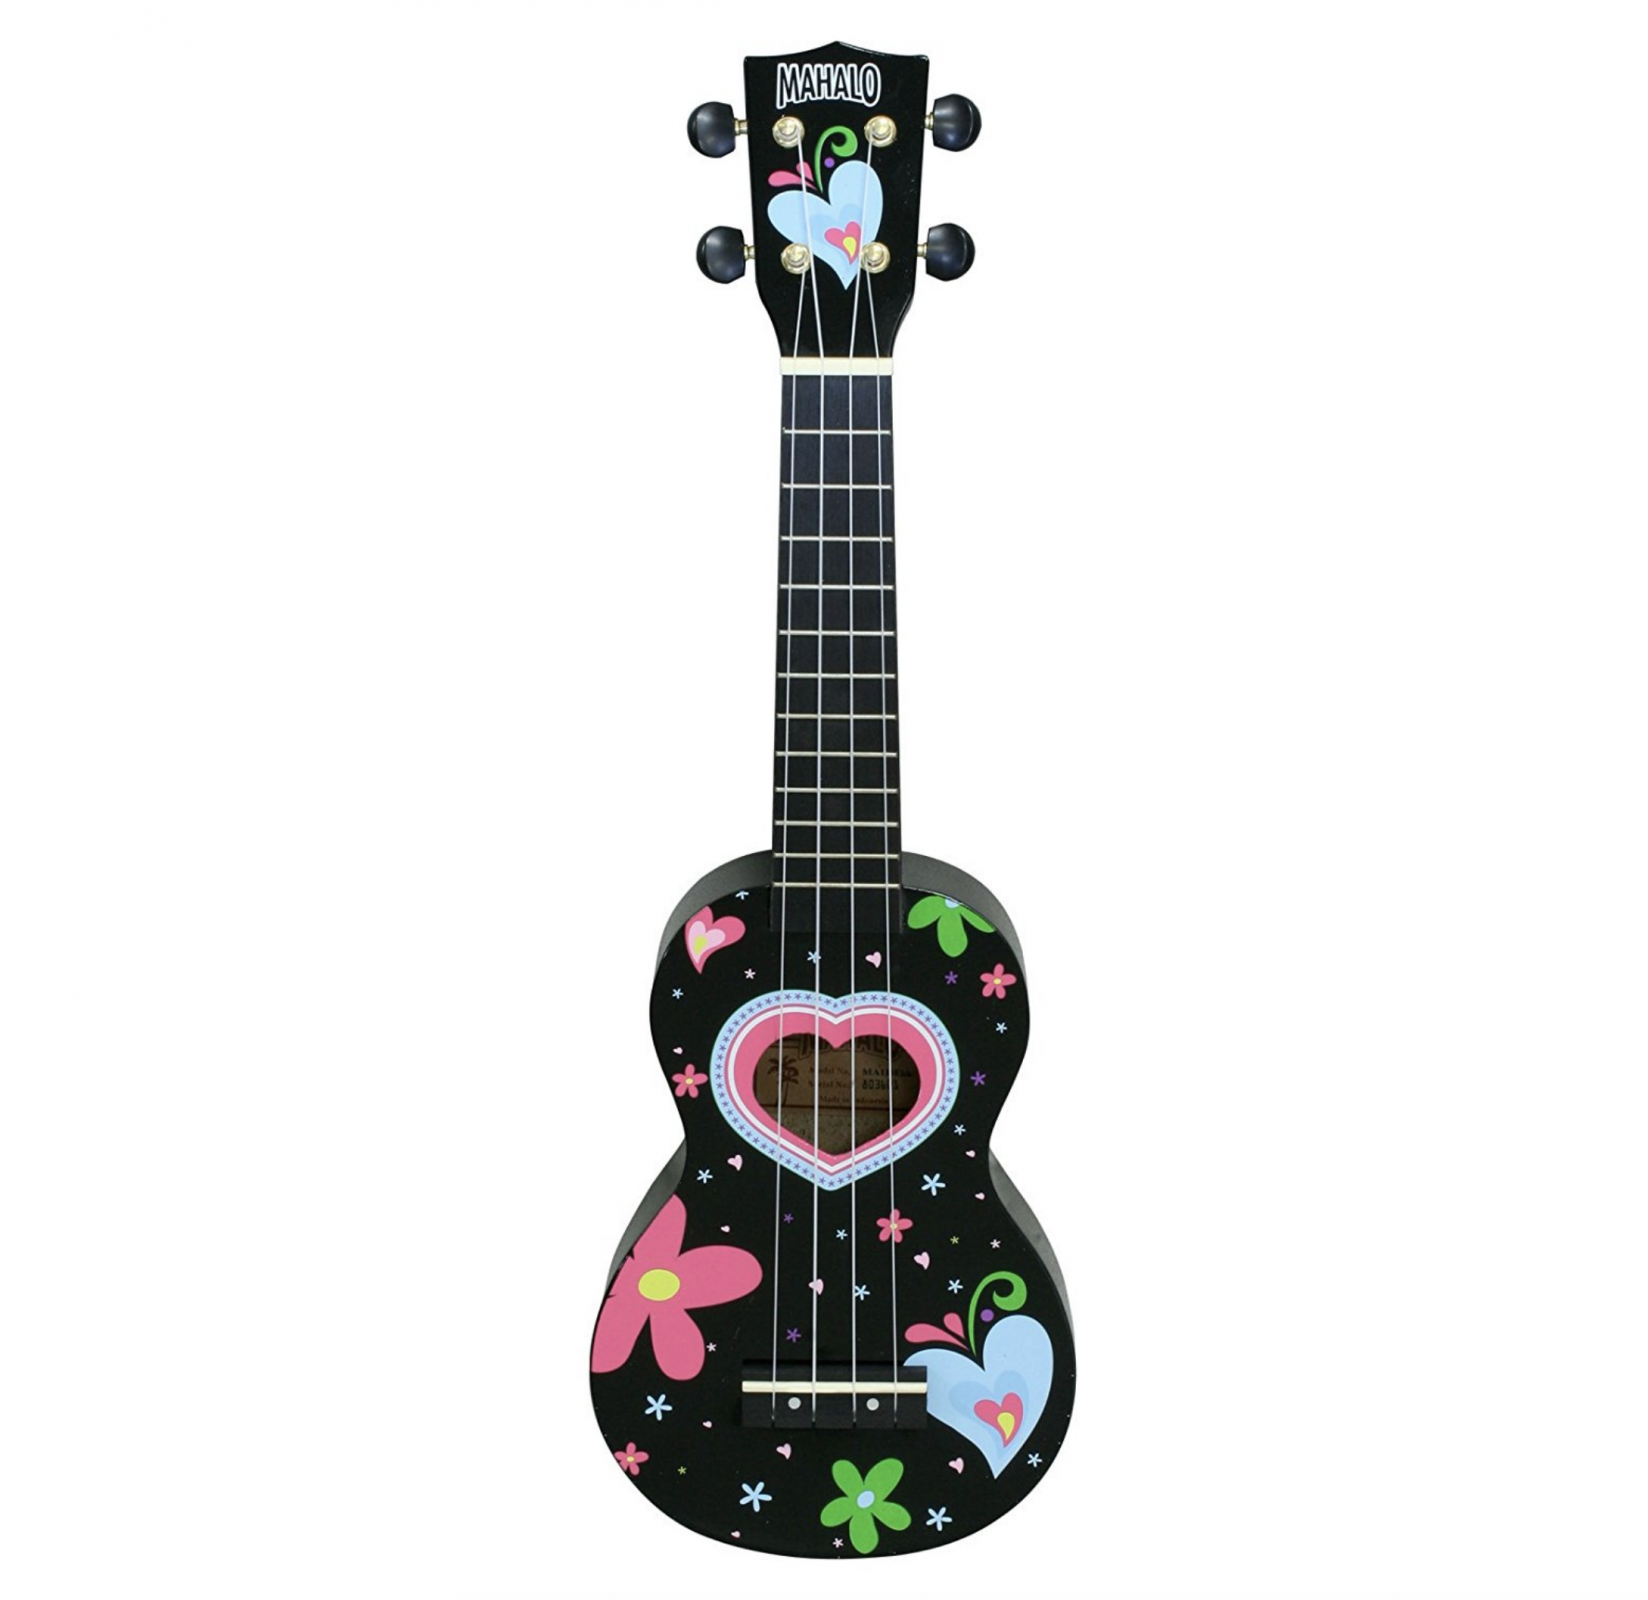 Mahalo Art Series Heart Soprano Ukulele, Black